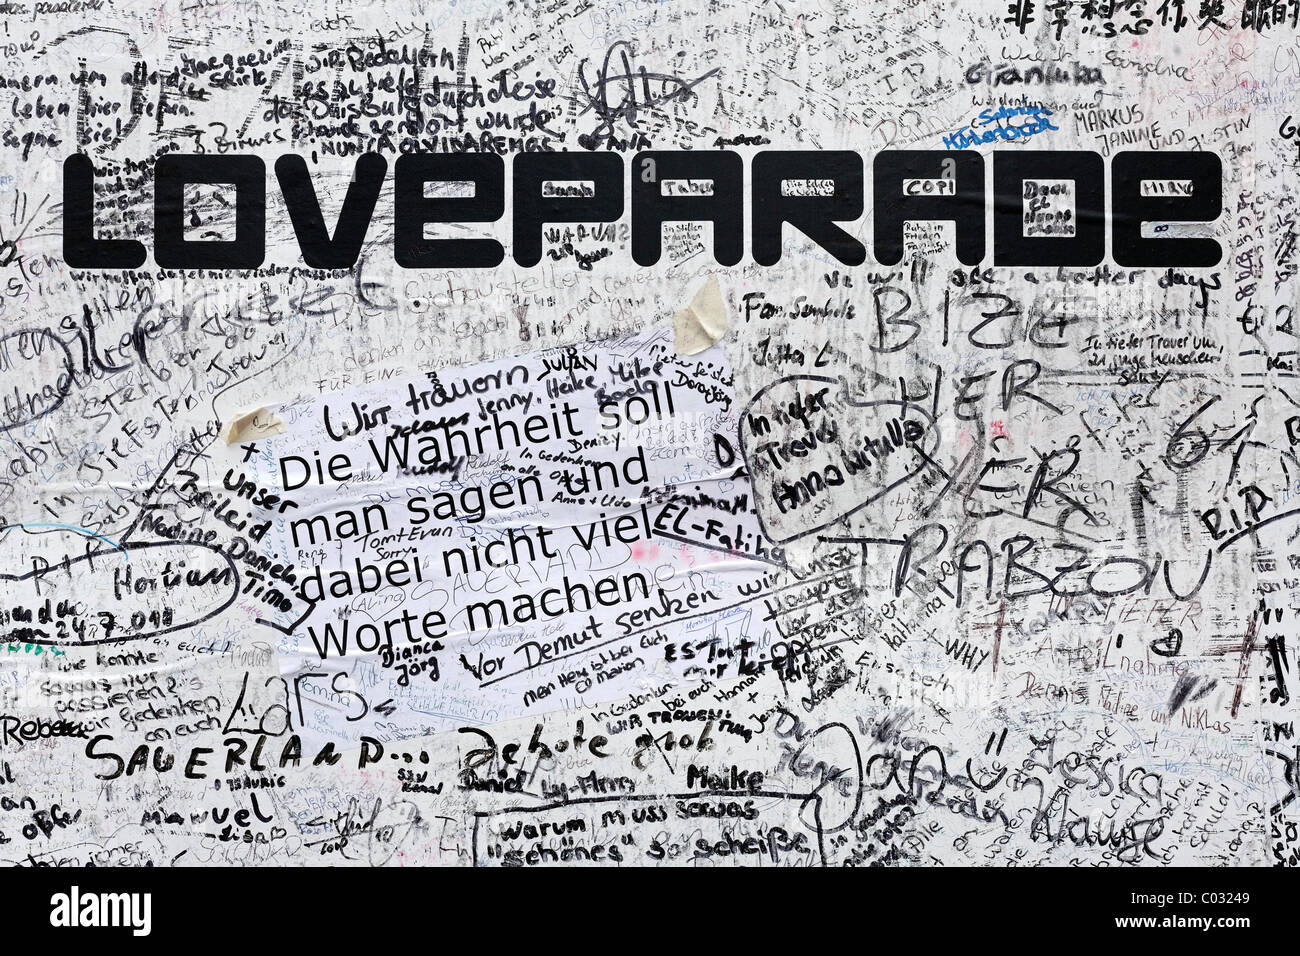 Poster with sympathetic notes and signatures, to remember the victims of the crowd crush at the Loveparade 2010, - Stock Image